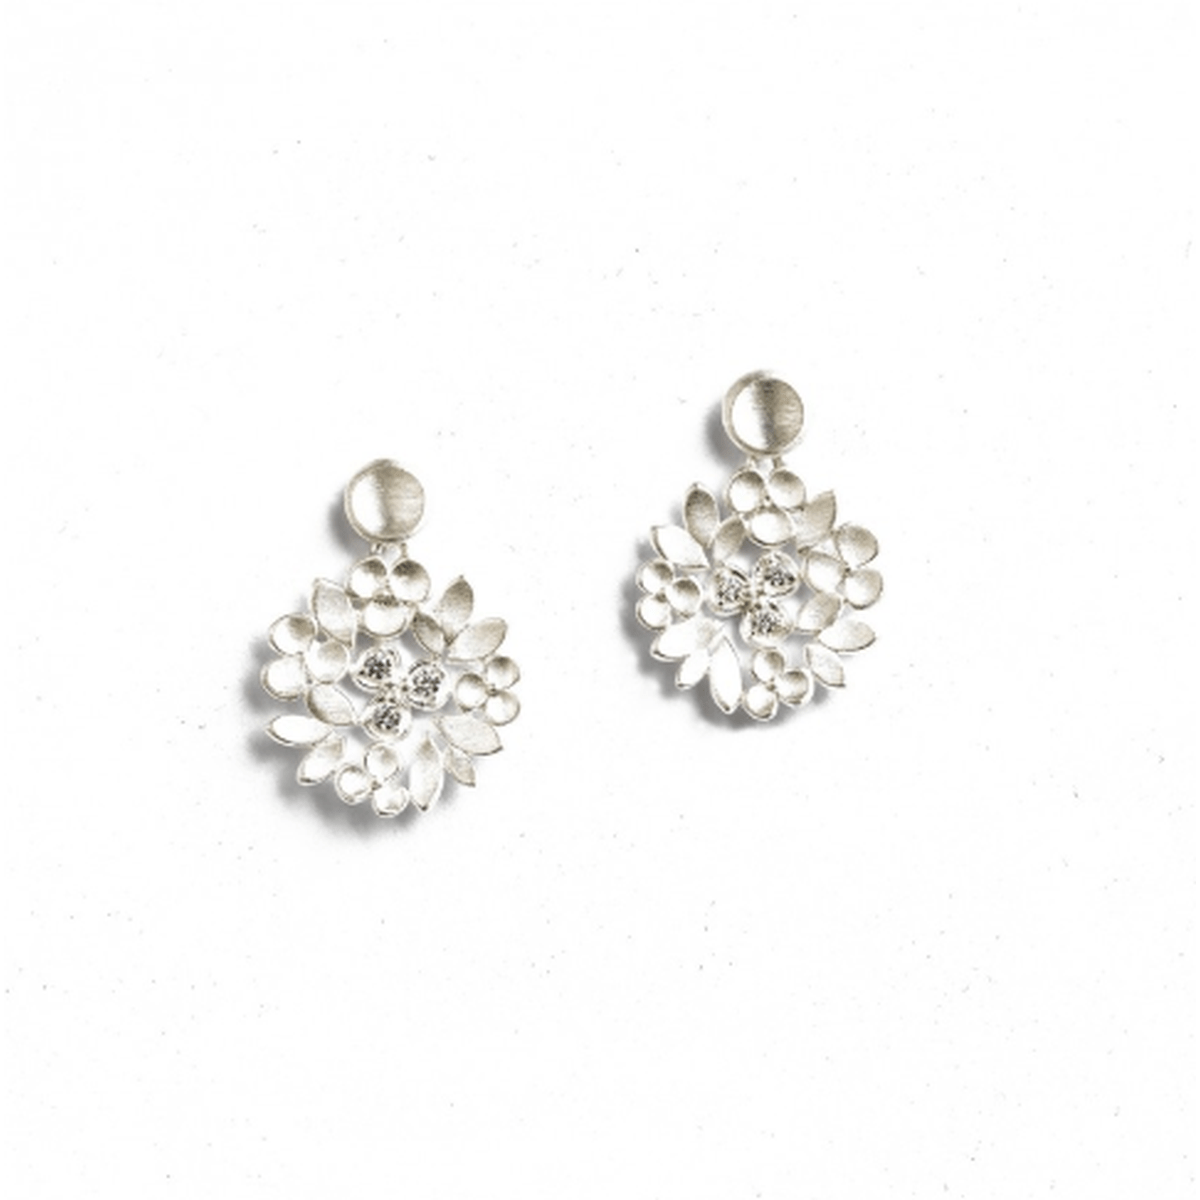 Liandra Zirconia Earrings - 15702154-Bernd Wolf-Renee Taylor Gallery